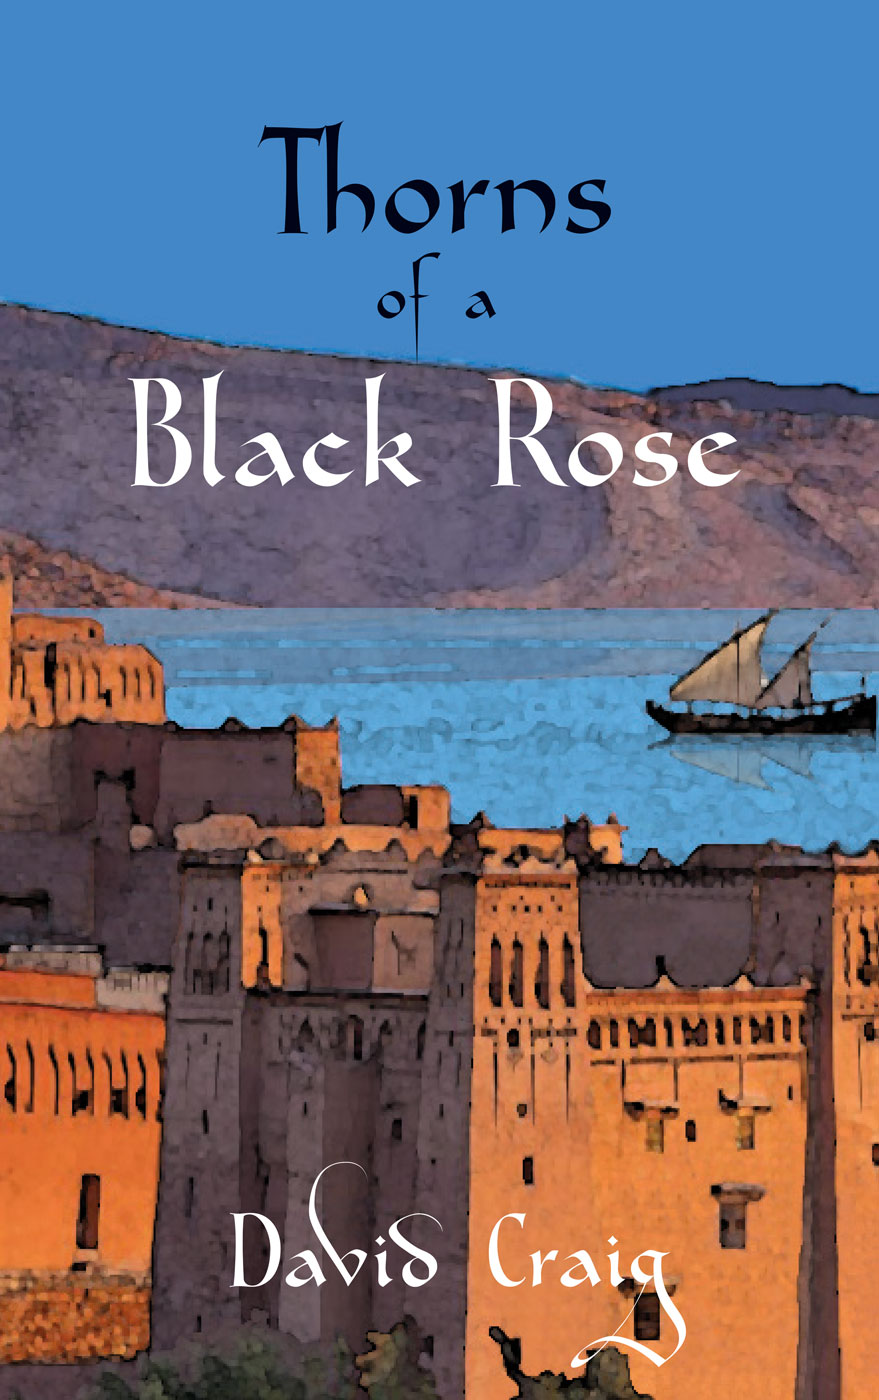 Thorns of a Black Rose by David Craig; Cover design by PR Pope